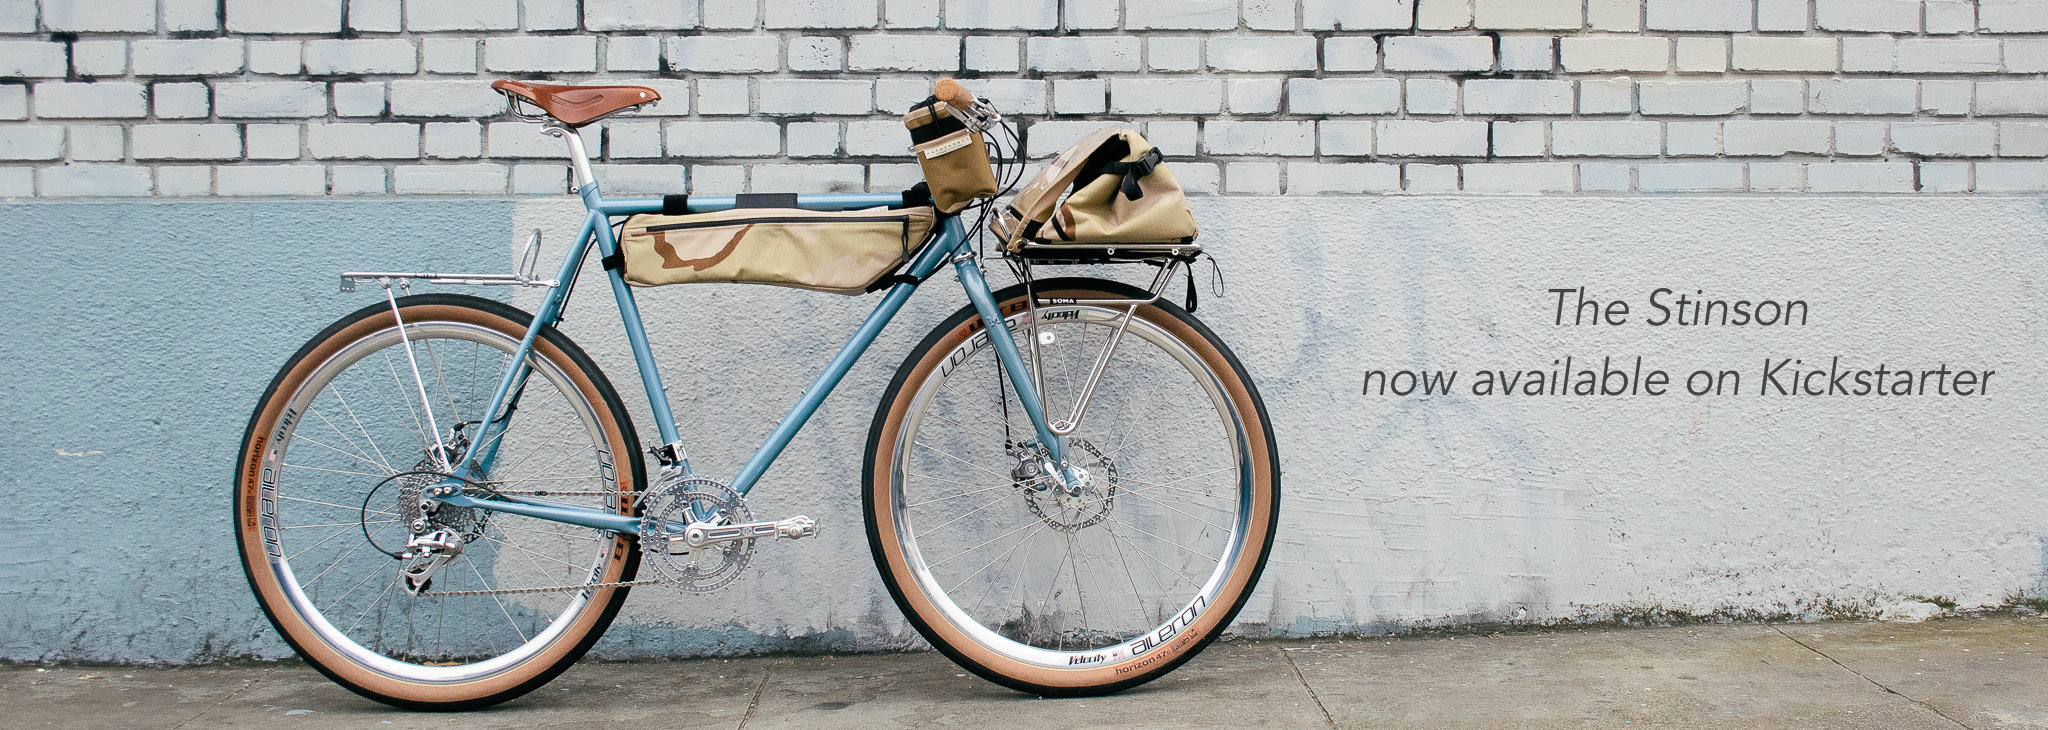 344d6fbb5df Home | Mission Bicycle